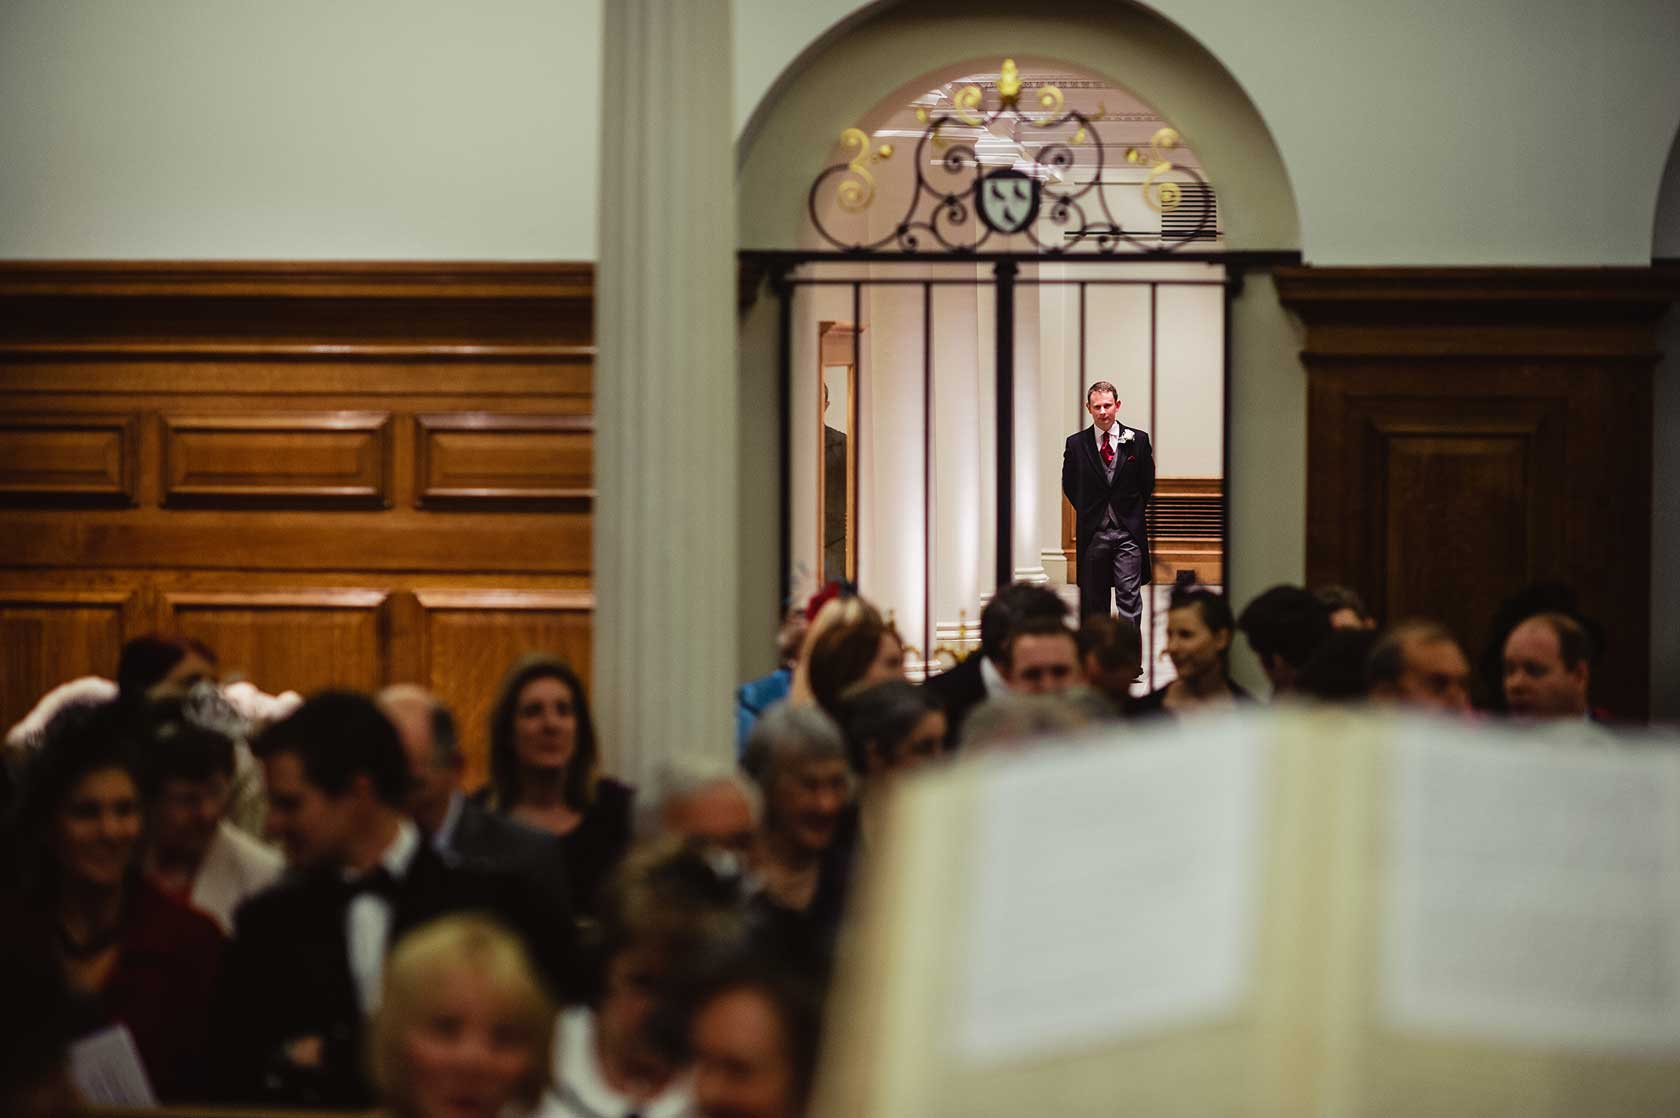 Reportage Wedding Photography at Mercers Hall